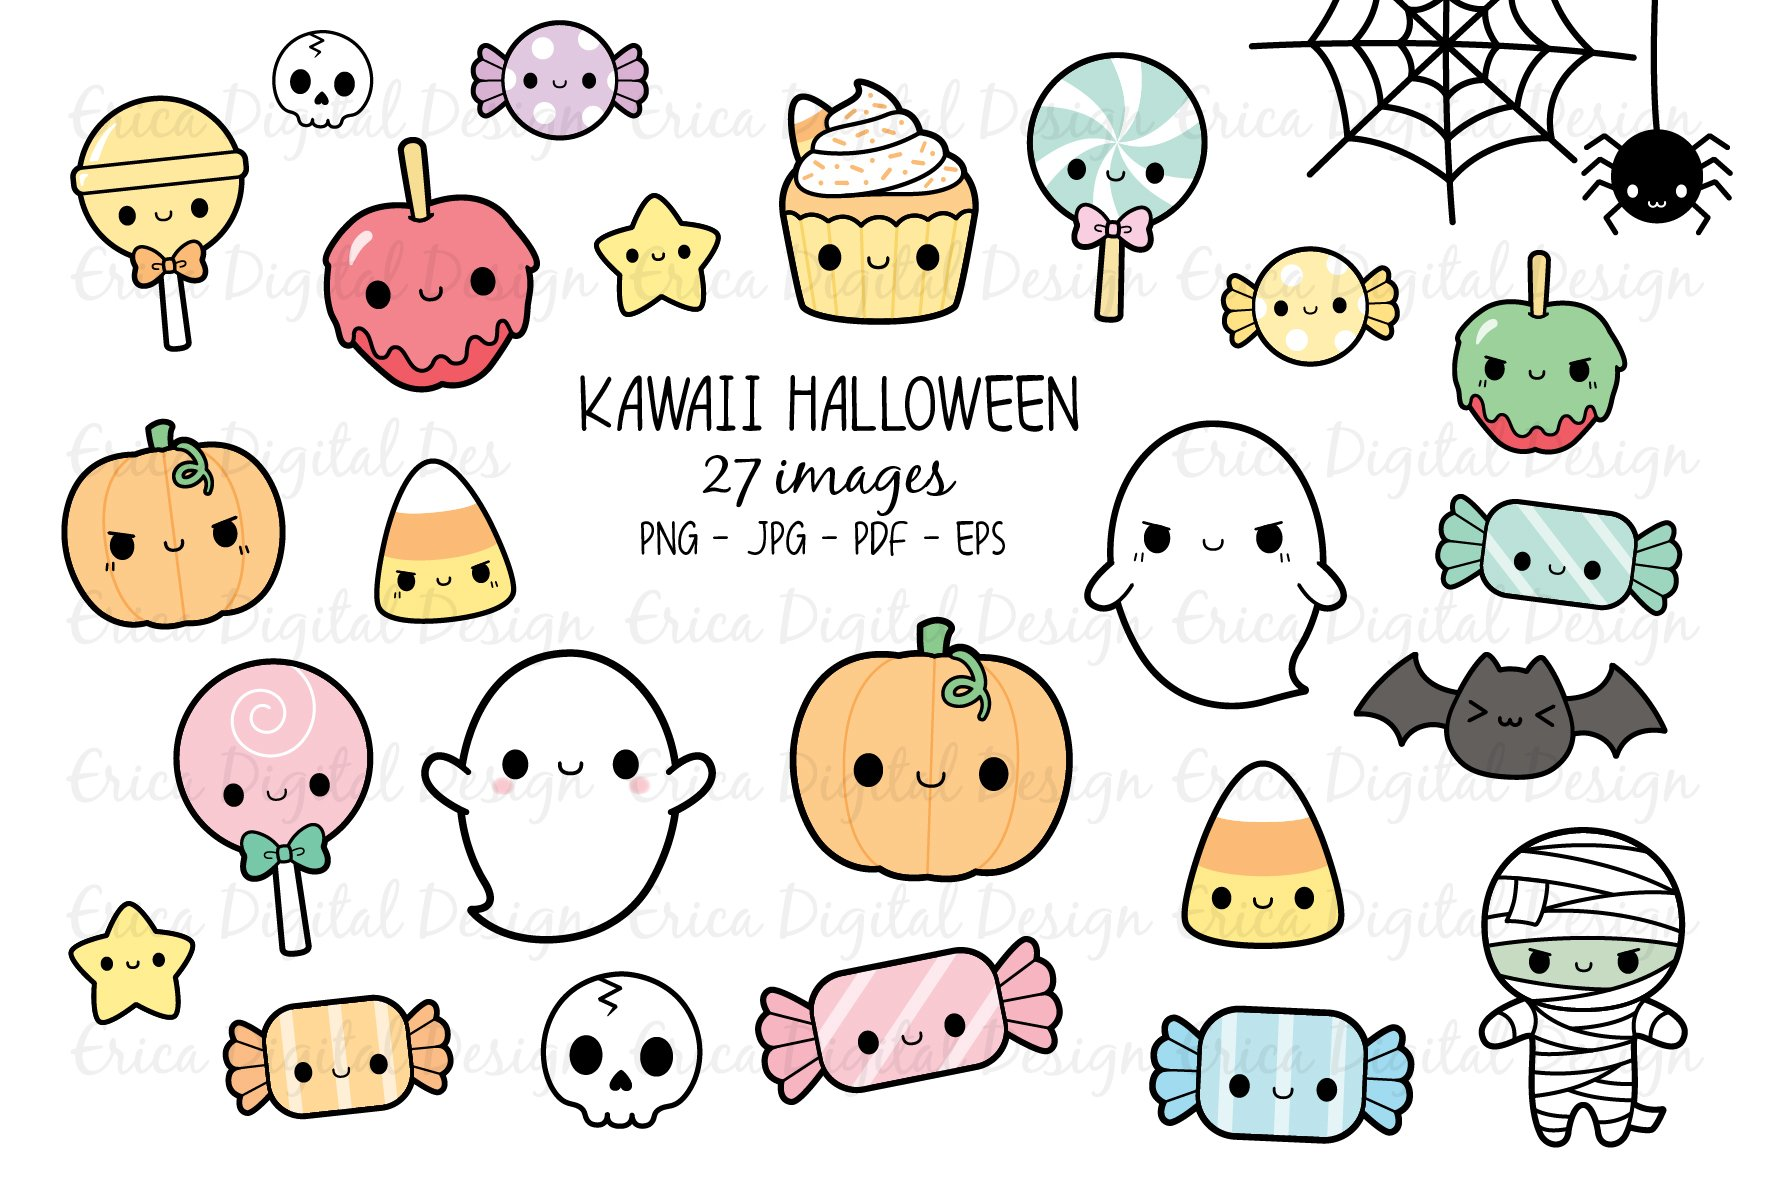 Kawaii Halloween clipart set - 27 cute Halloween images ...